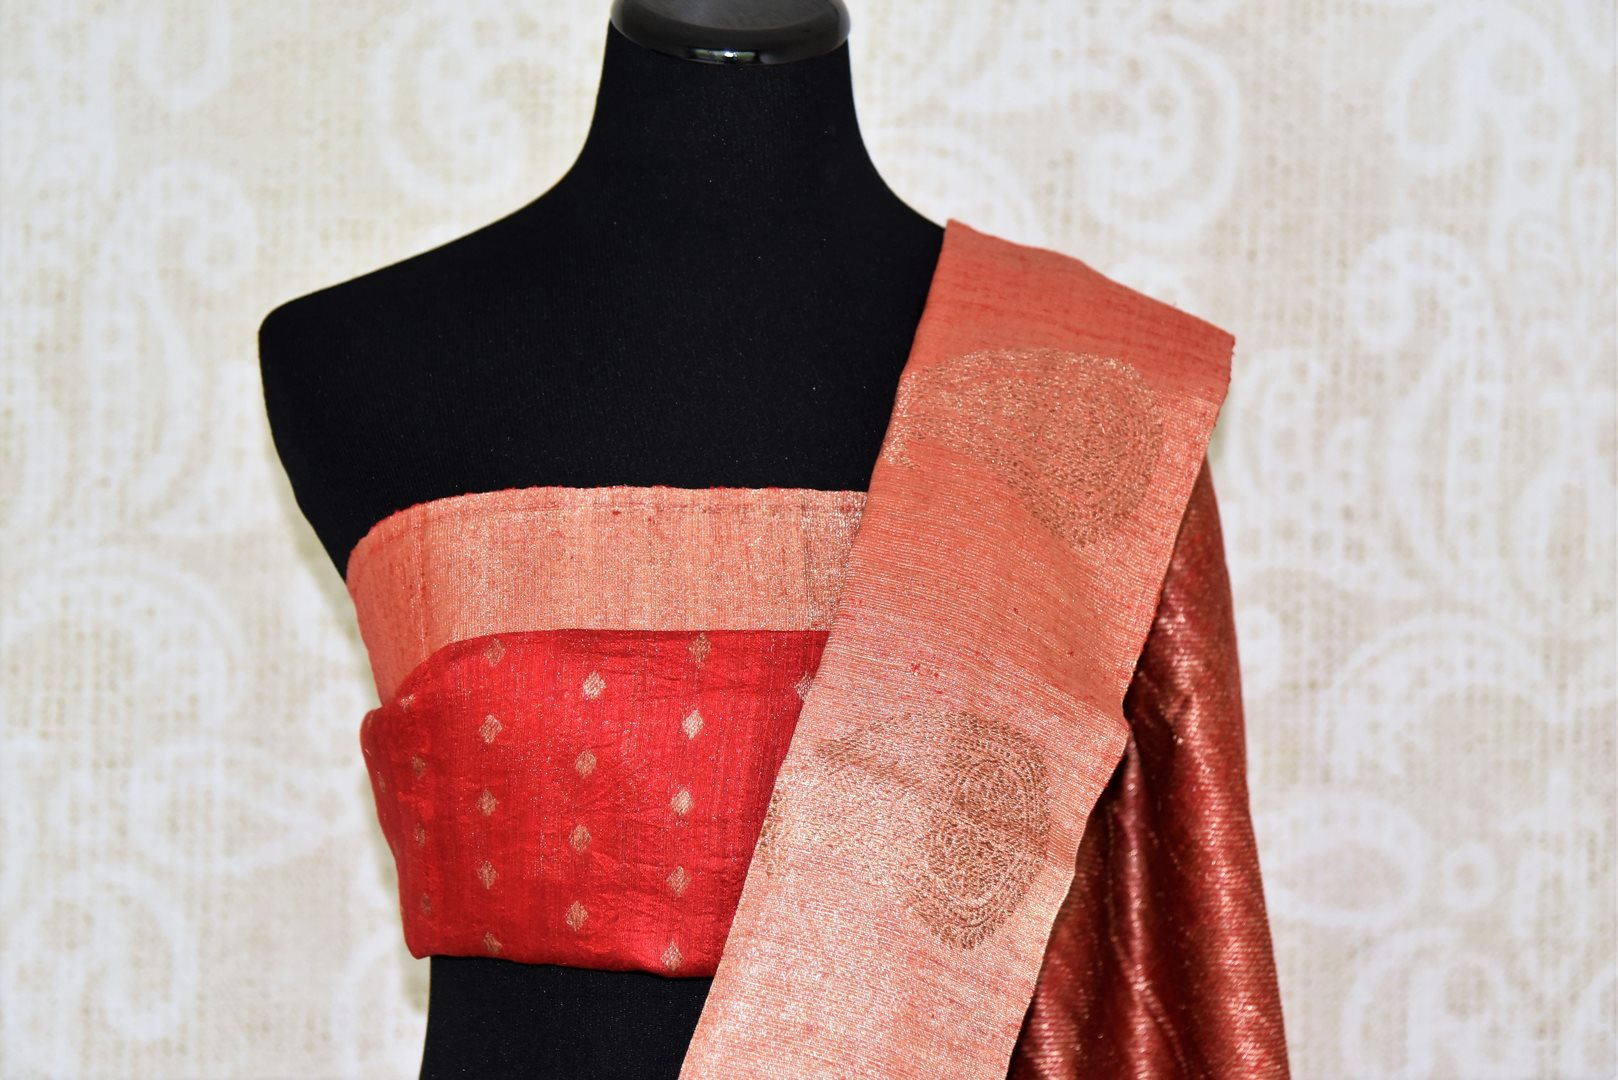 Buy black tussar Benarasi sari online in USA with red zari border and pallu. Make an elegant ethnic fashion statement at parties, weddings and special occasions with a splendid collection of Indian designer sarees, Banarasi saris, handloom saris from Pure Elegance Indian clothing store in USA or shop online.-blouse pallu